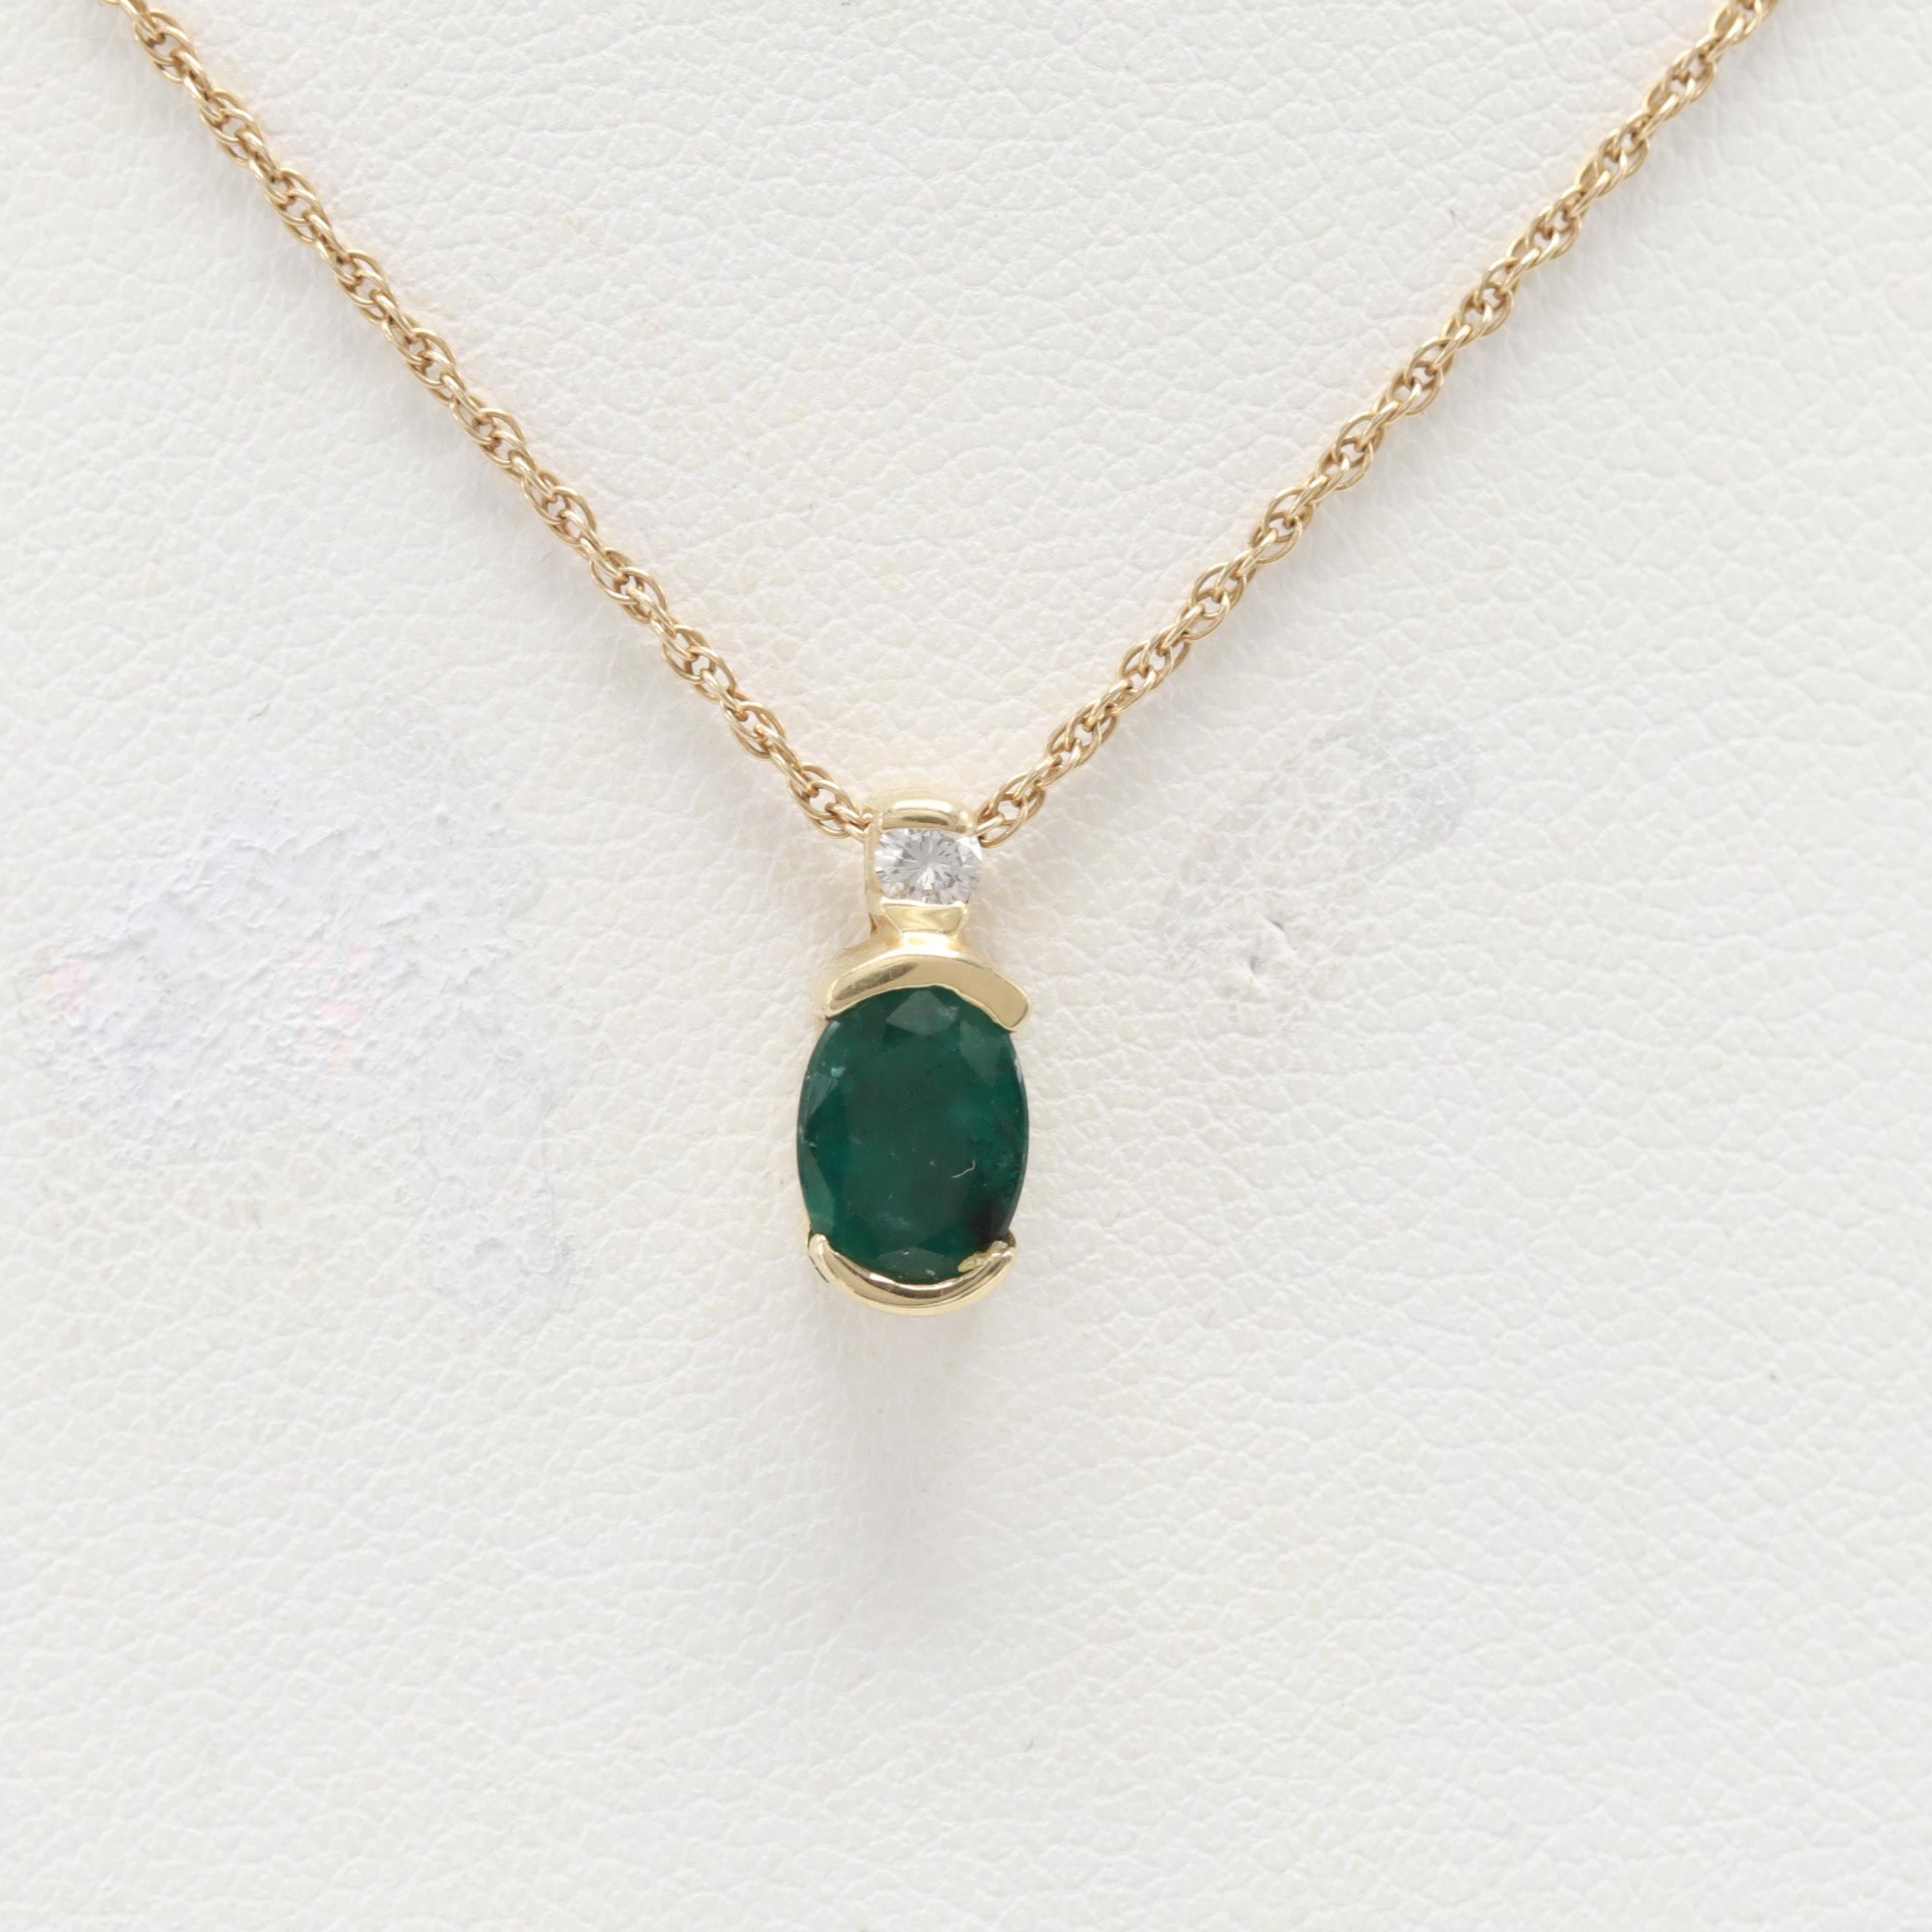 14K Yellow Gold Emerald and Diamond Necklace